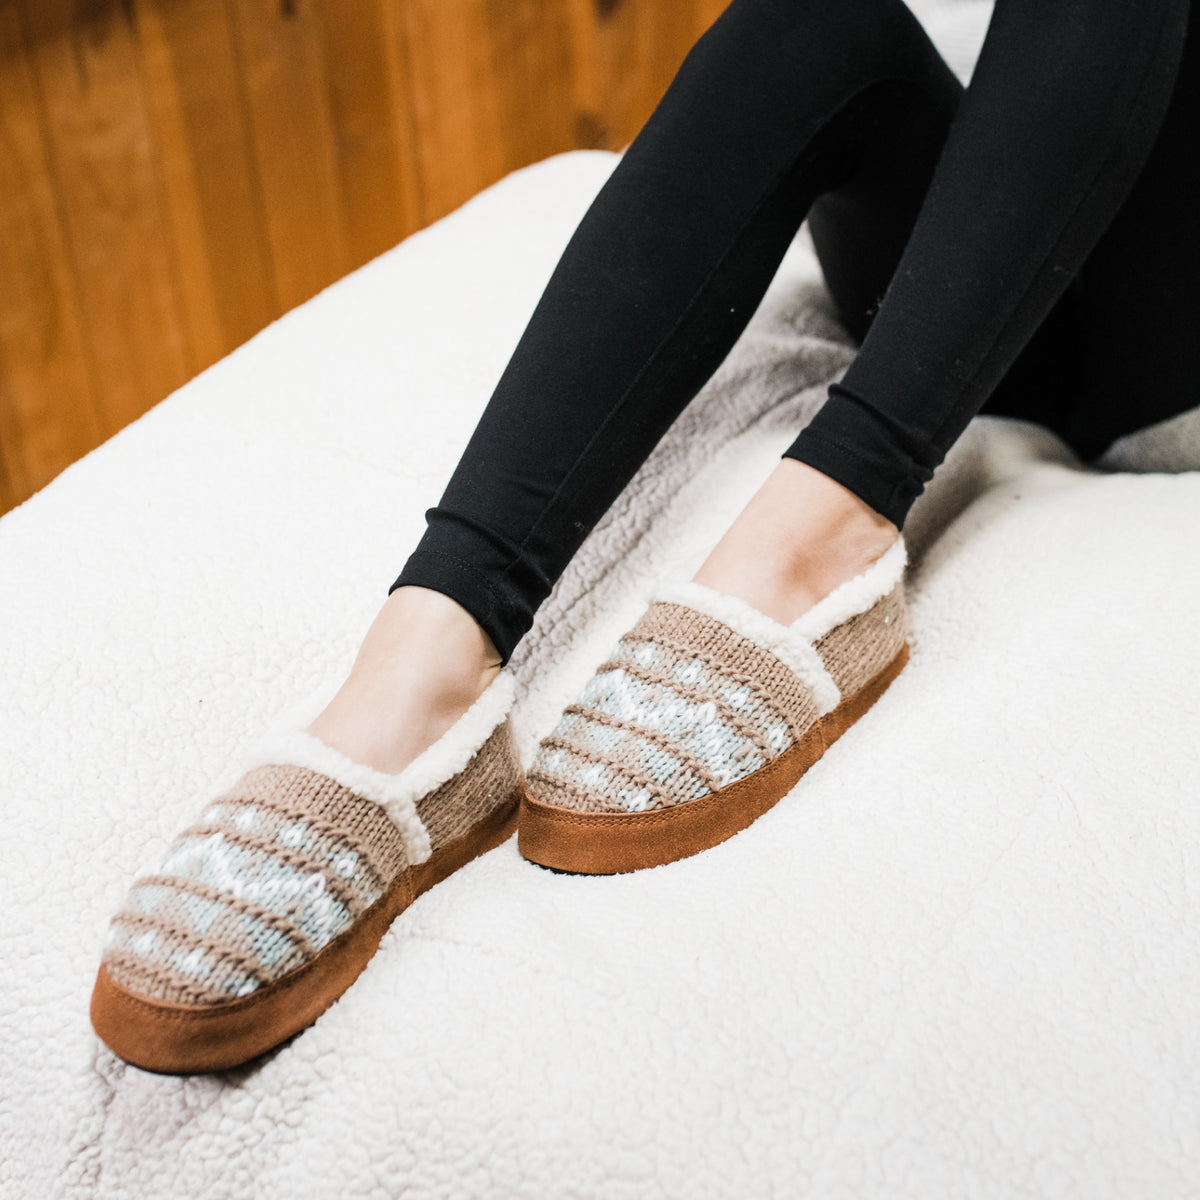 Nordic Oatmeal Heather Acorn Slipper on a white blanket